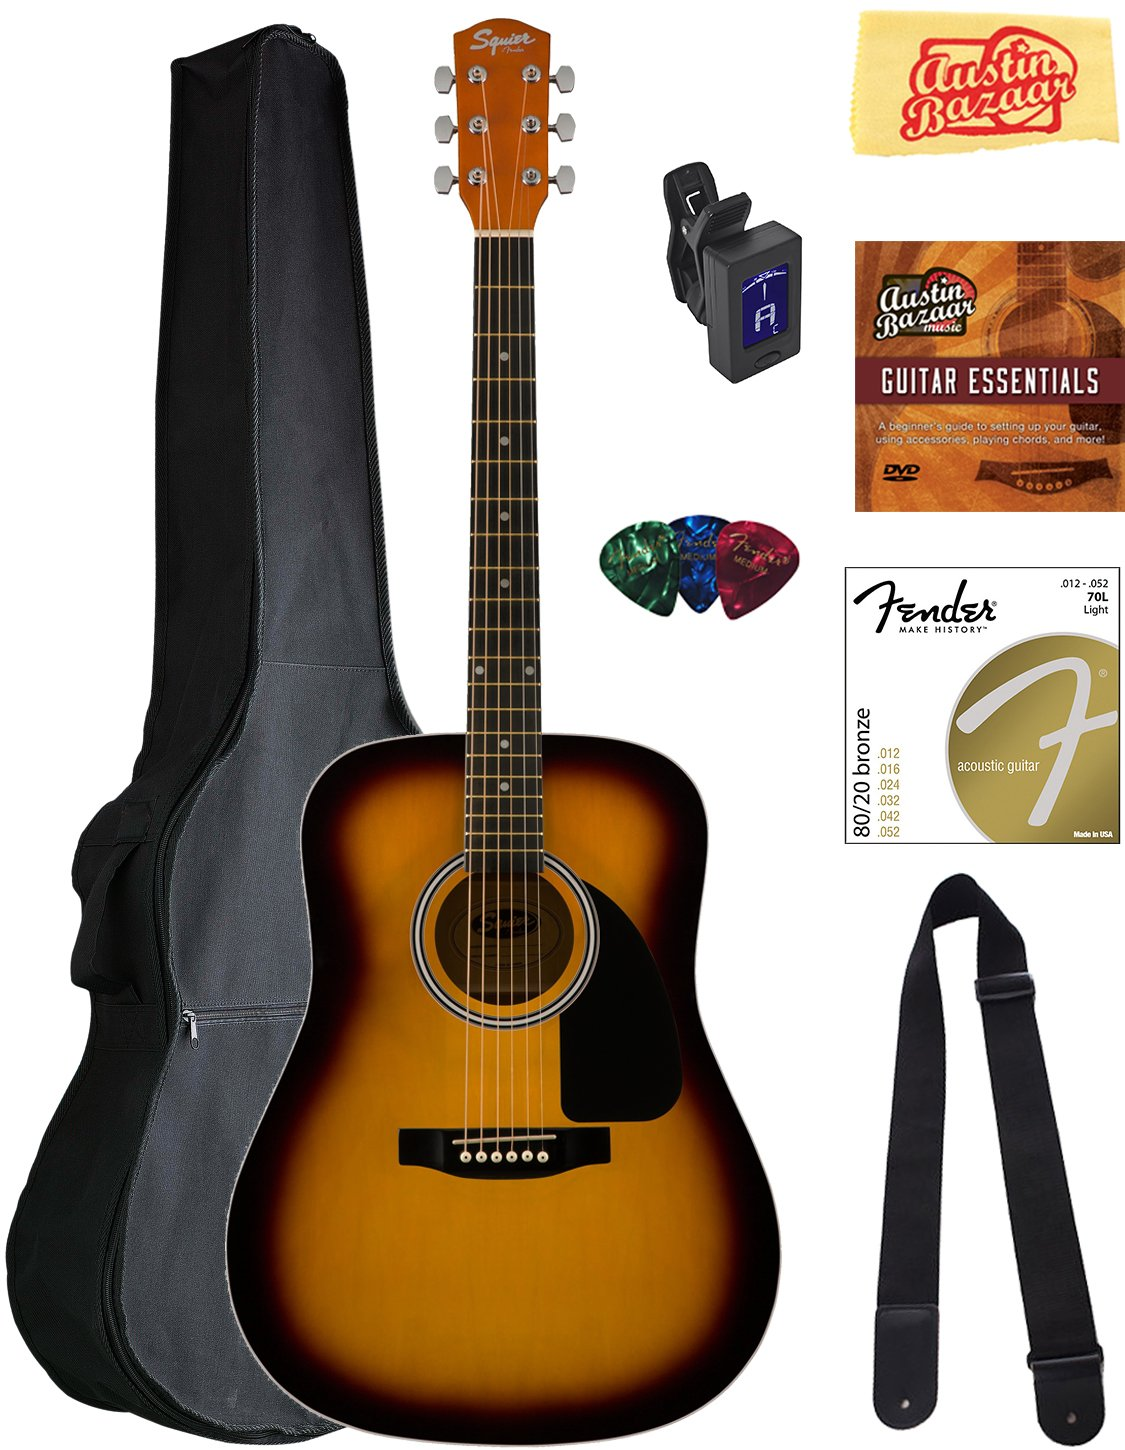 Squier by Fender SA-150 Dreadnought Acoustic Guitar - Sunburst Bundle with Gig Bag, Tuner, Strap, Strings, Picks, Austin Bazaar Instructional DVD, and Polishing Cloth